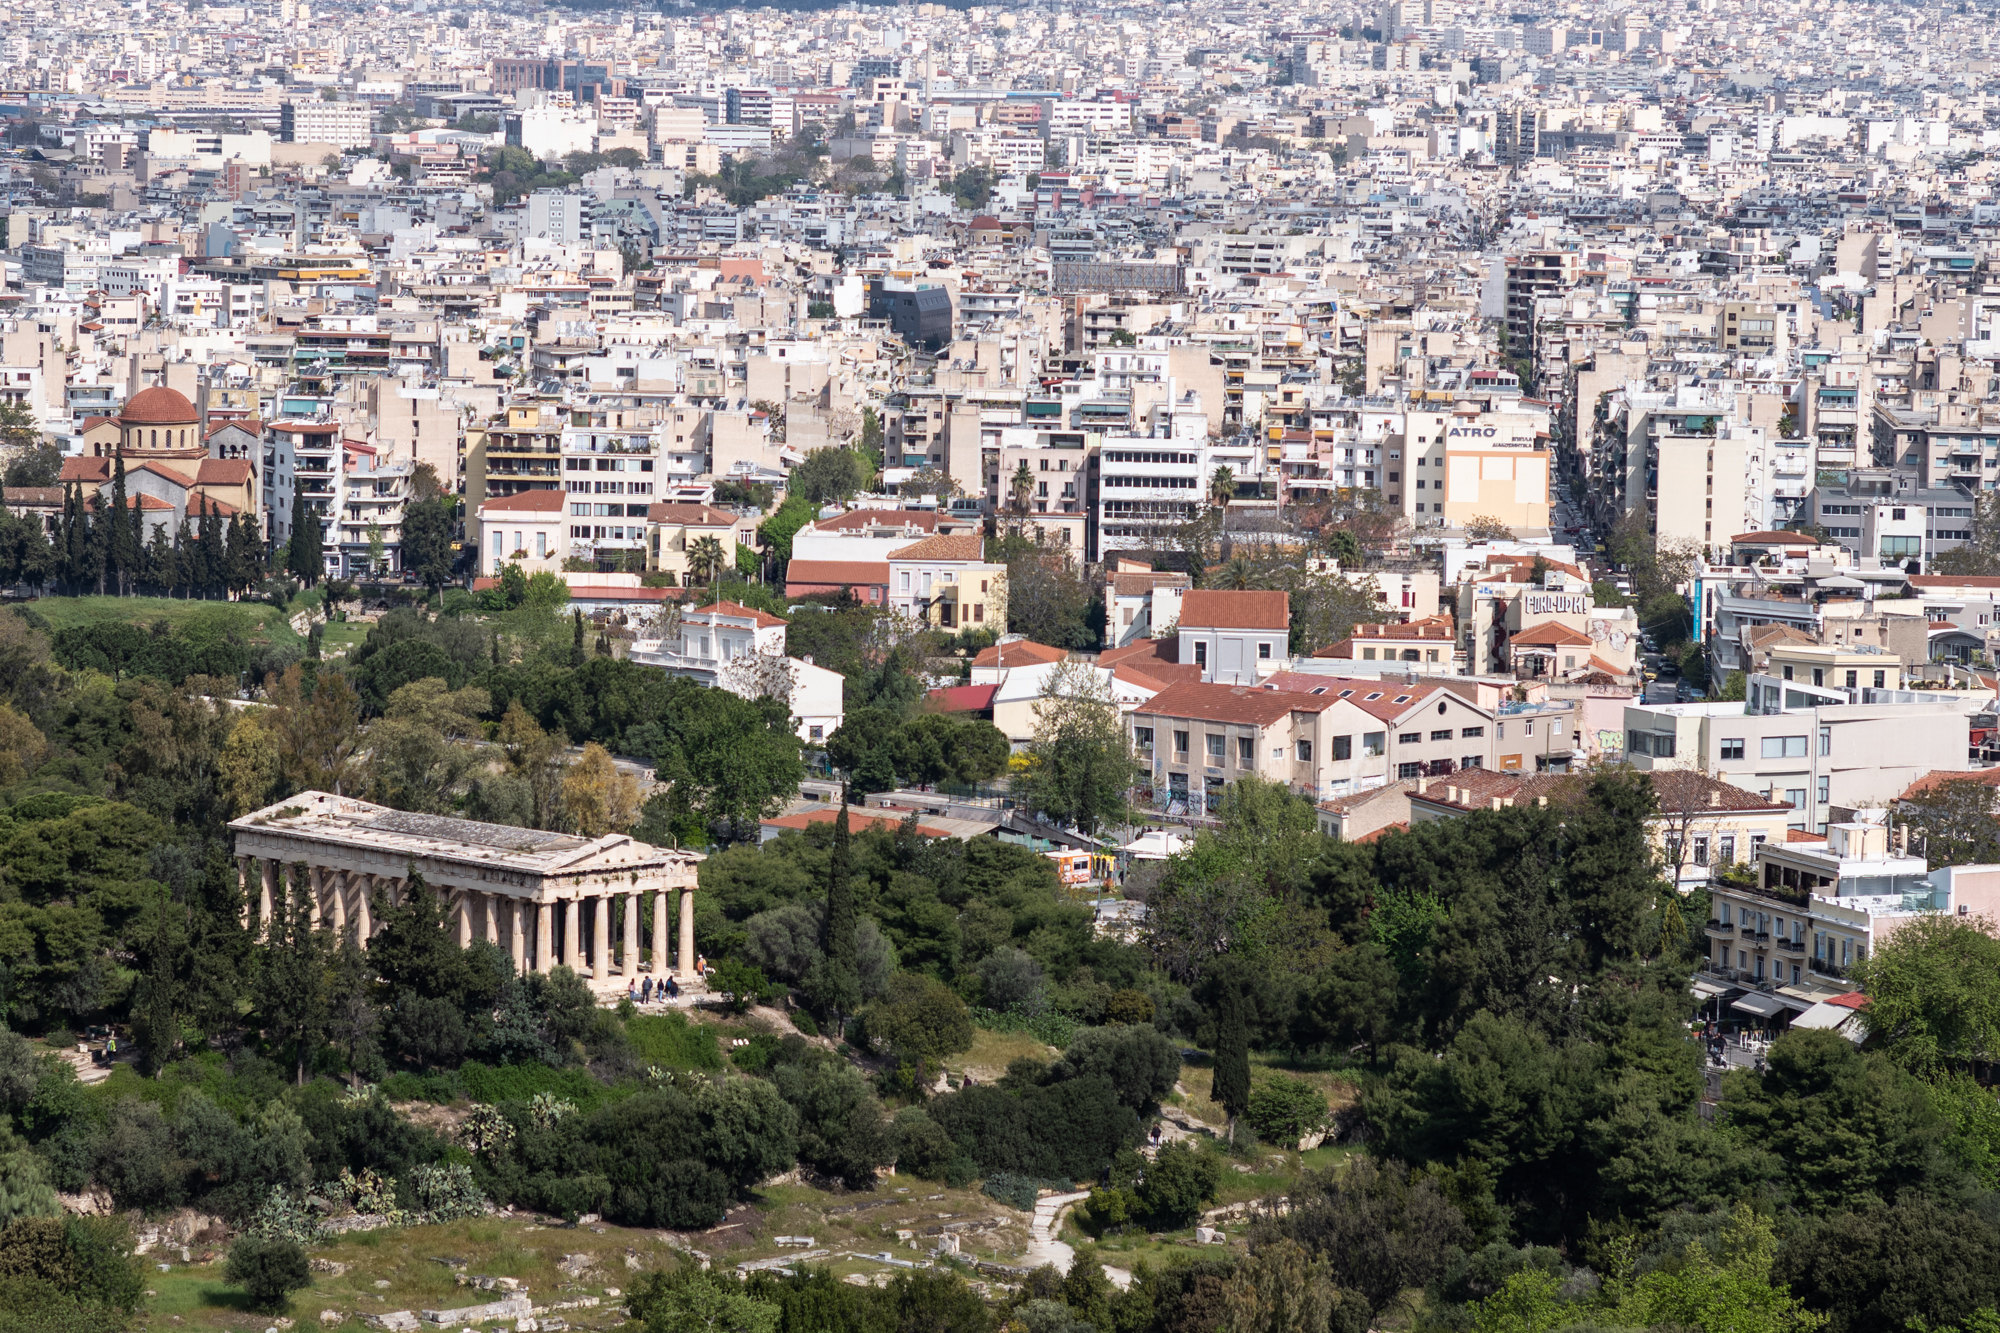 Temple of Hephaestus seen from the Acropolis